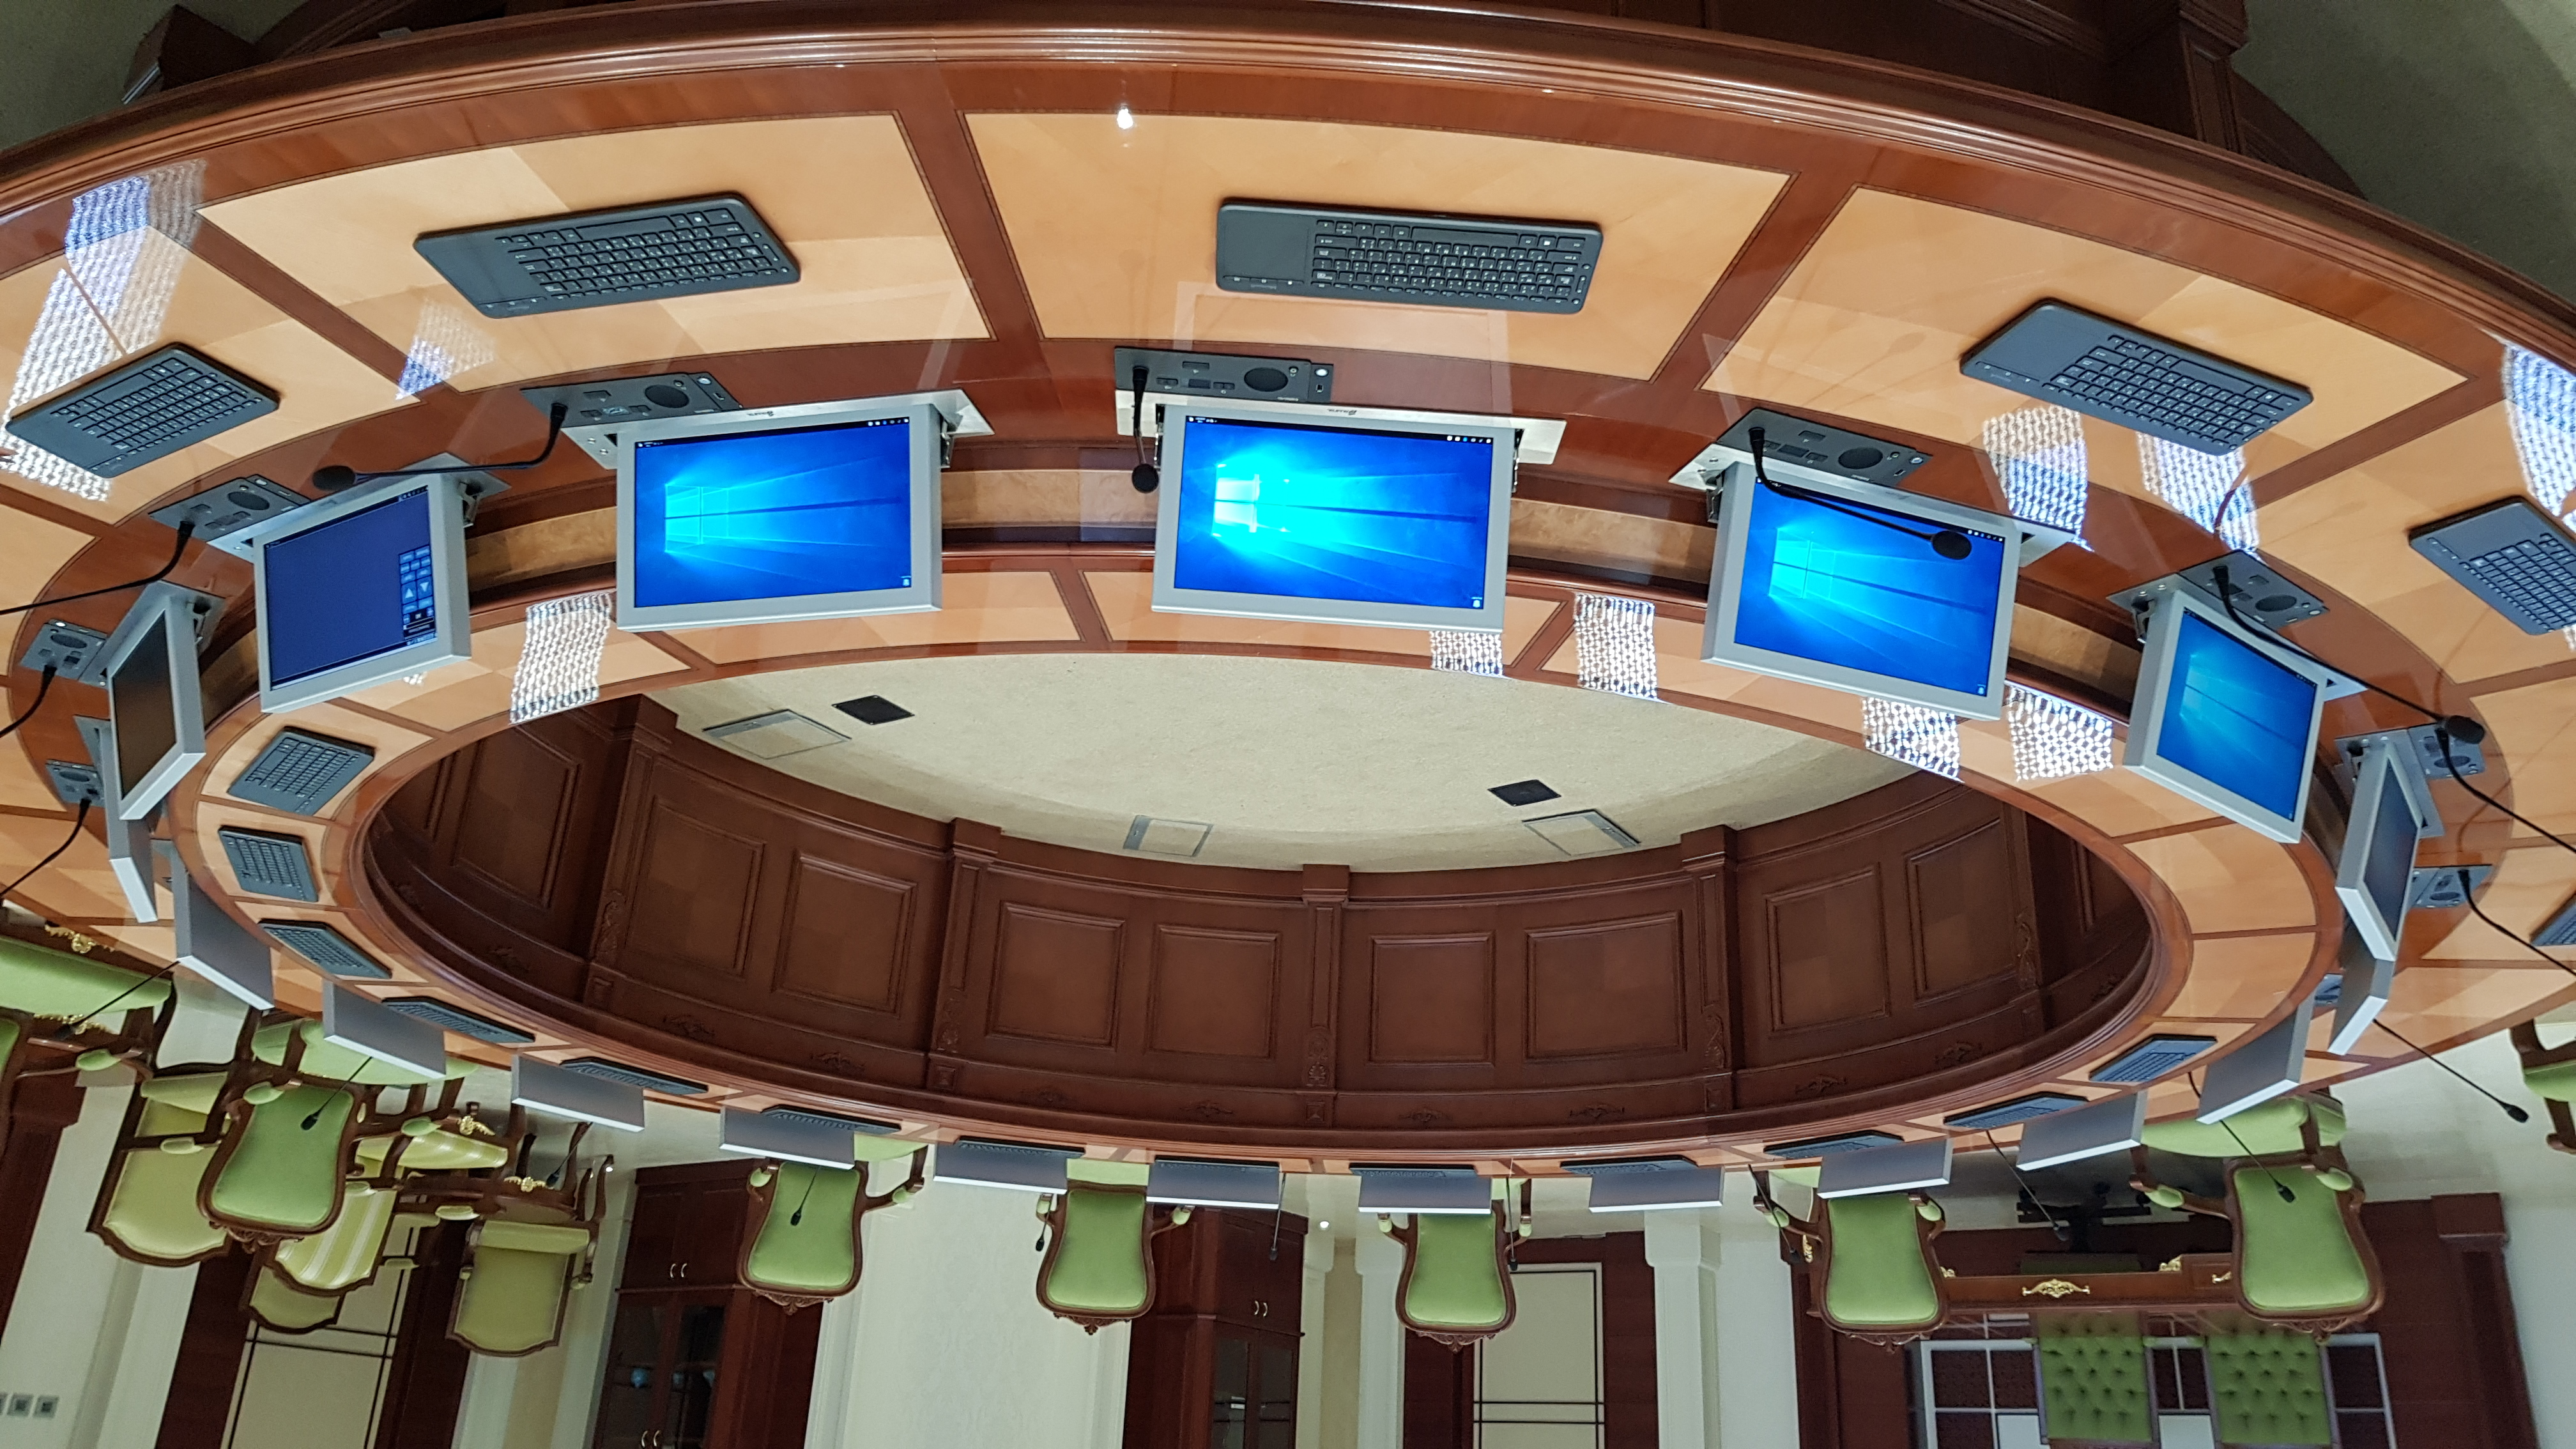 State of the art boardroom system